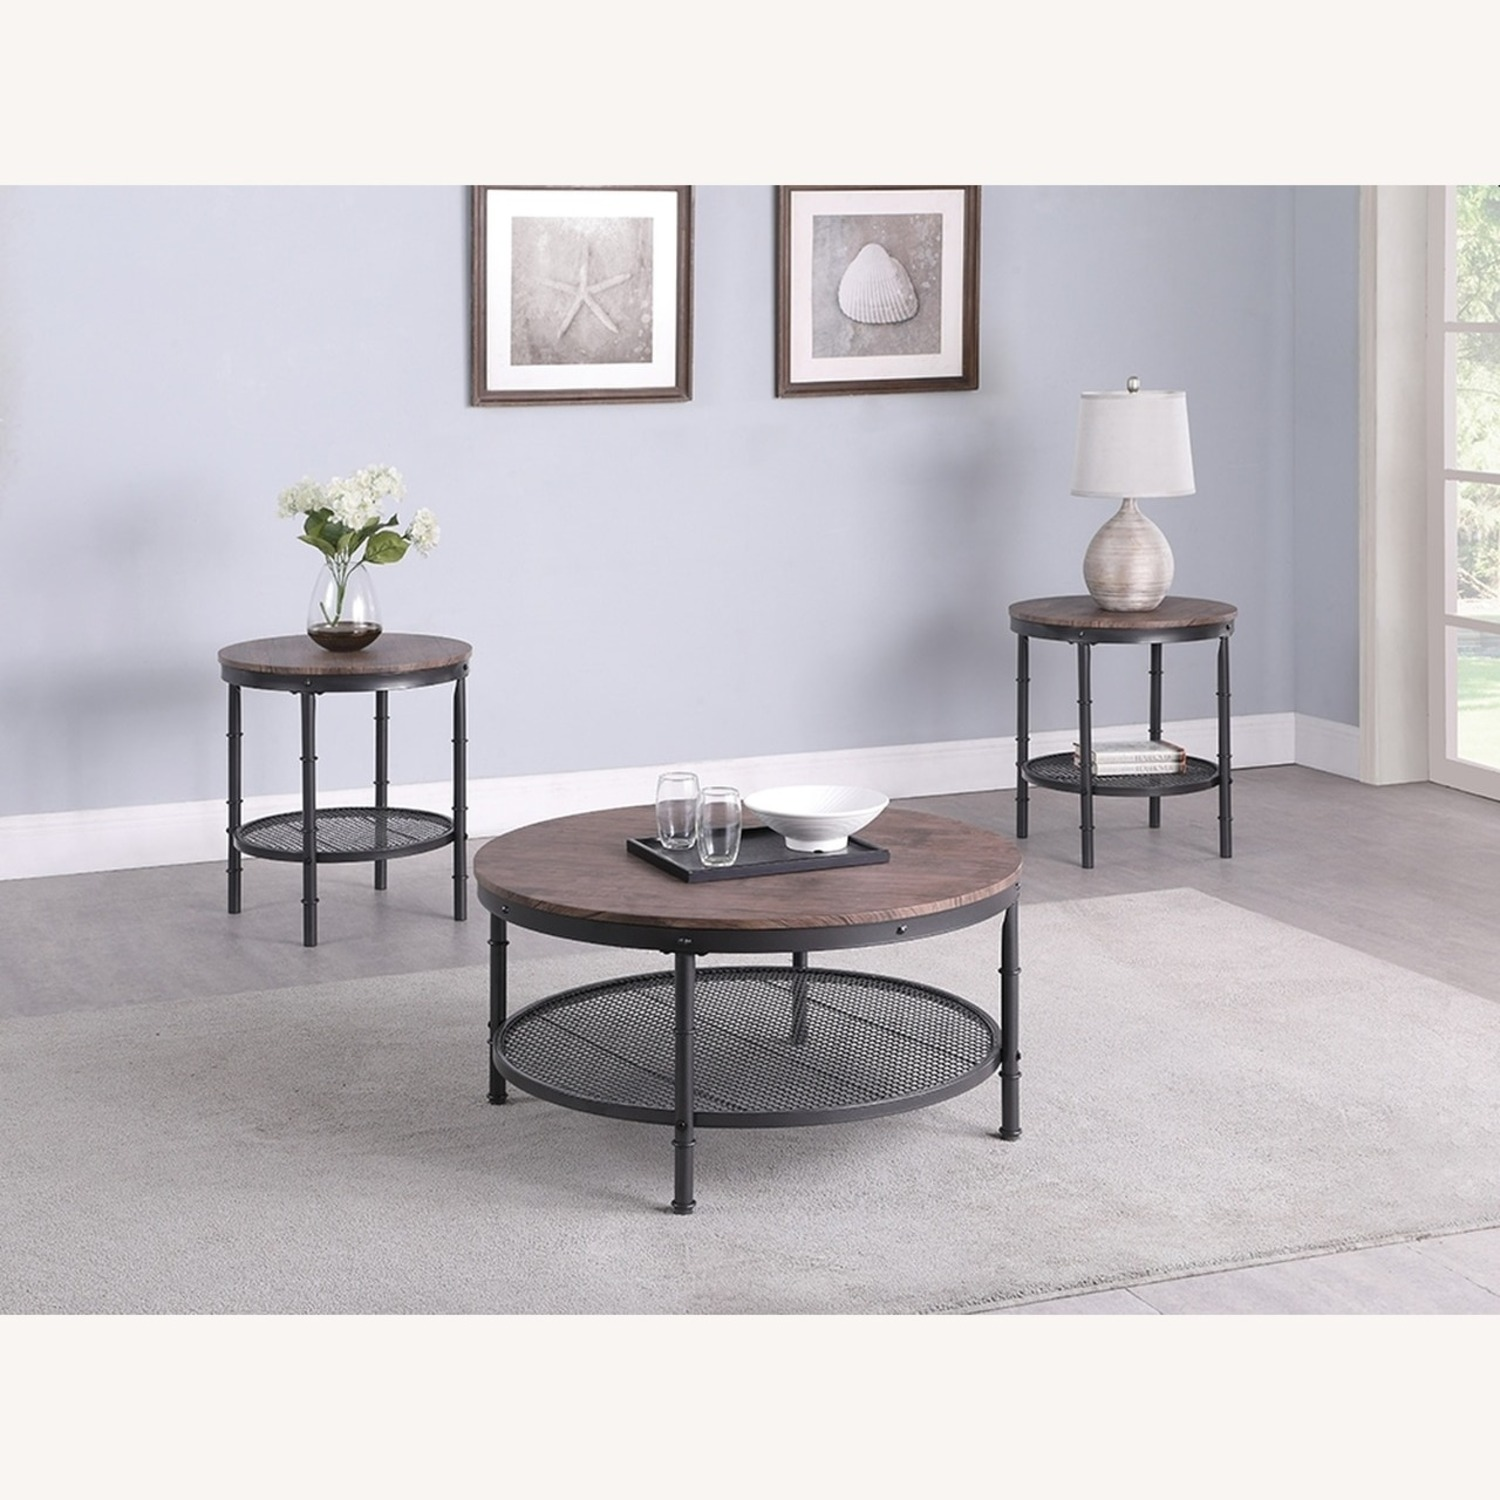 3-Piece Occasional Table In Weathered Brown Finish - image-0